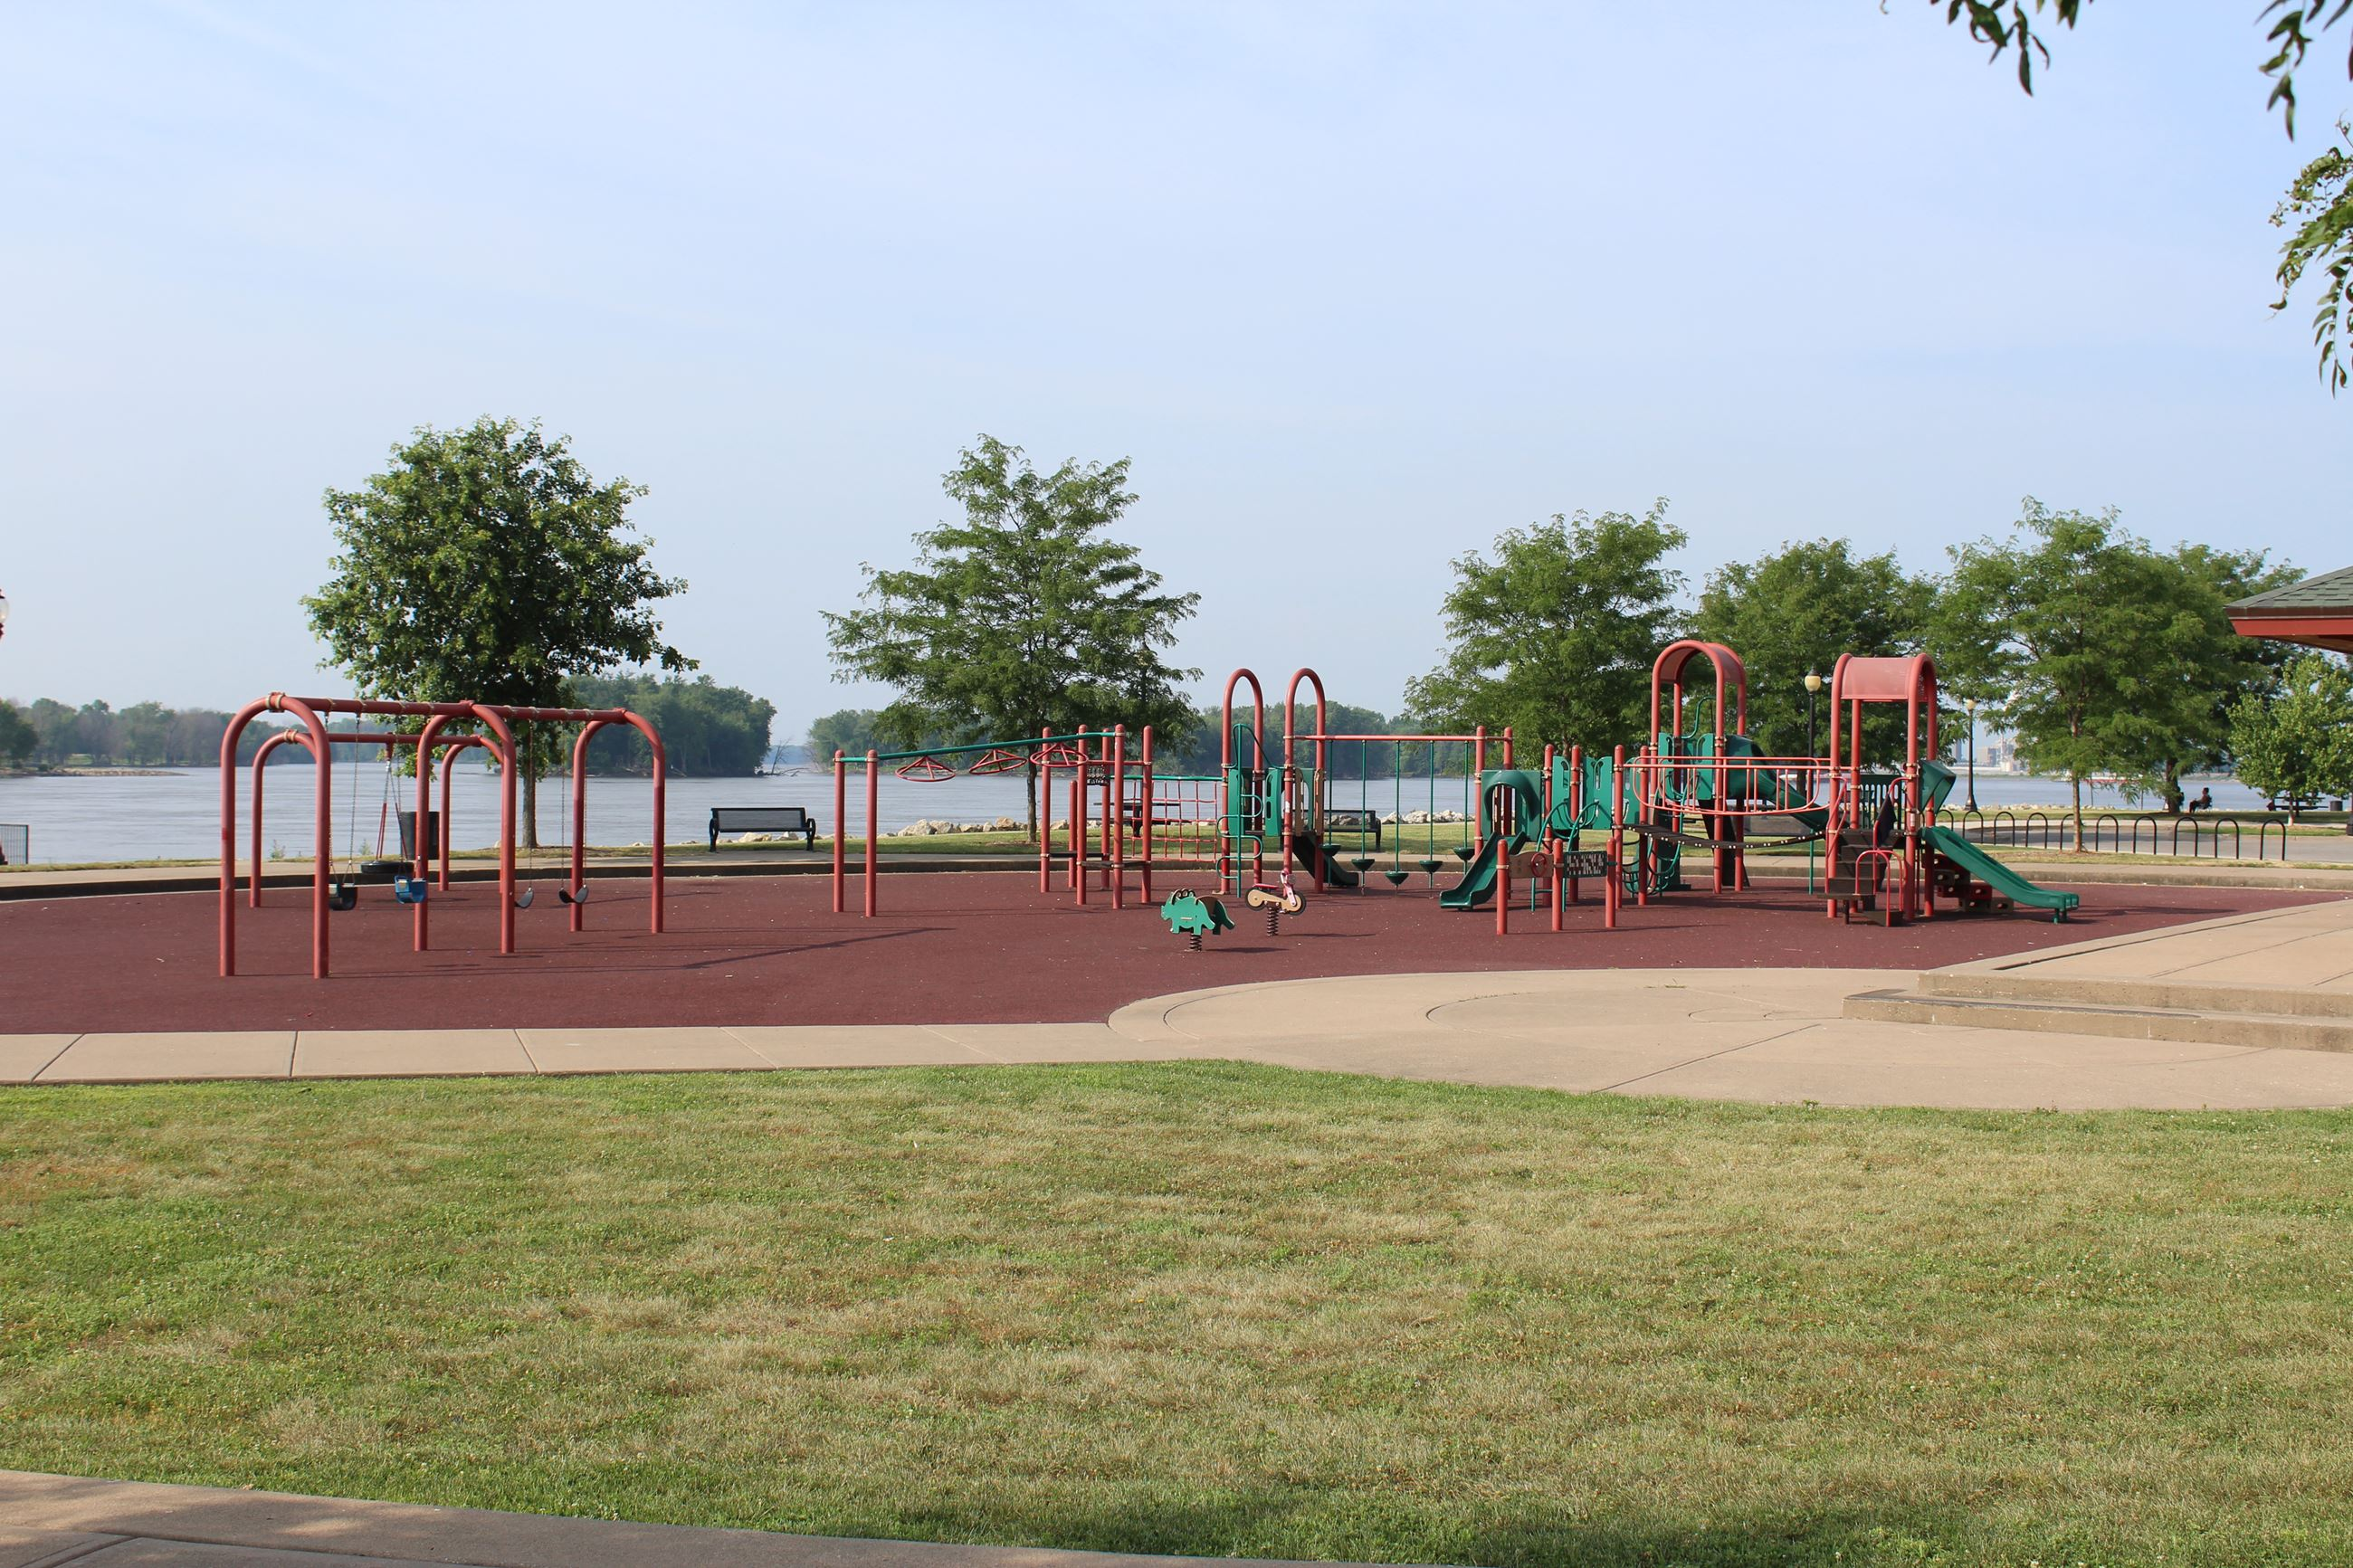 070920 Riverfront Park Playground Equipment 001 (JPG)